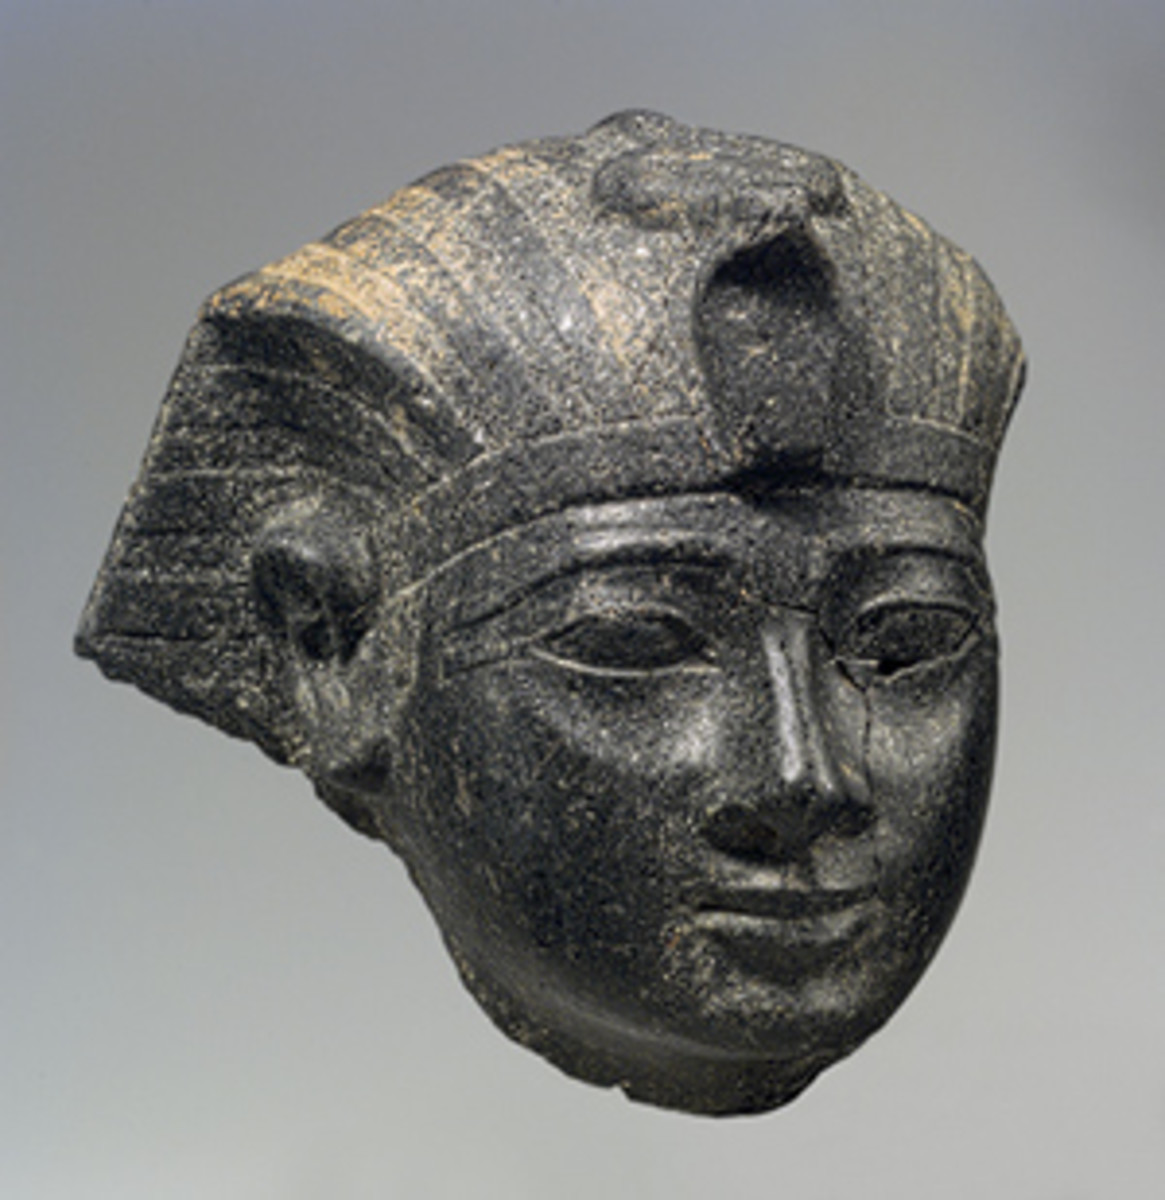 Amenhotep II, sixth King of Dynasty 18, and son of corregent of Thutmosis III. He preserved hegemony over most of Nubia and Levant, of those military campaigns initiated by Thustmosis III